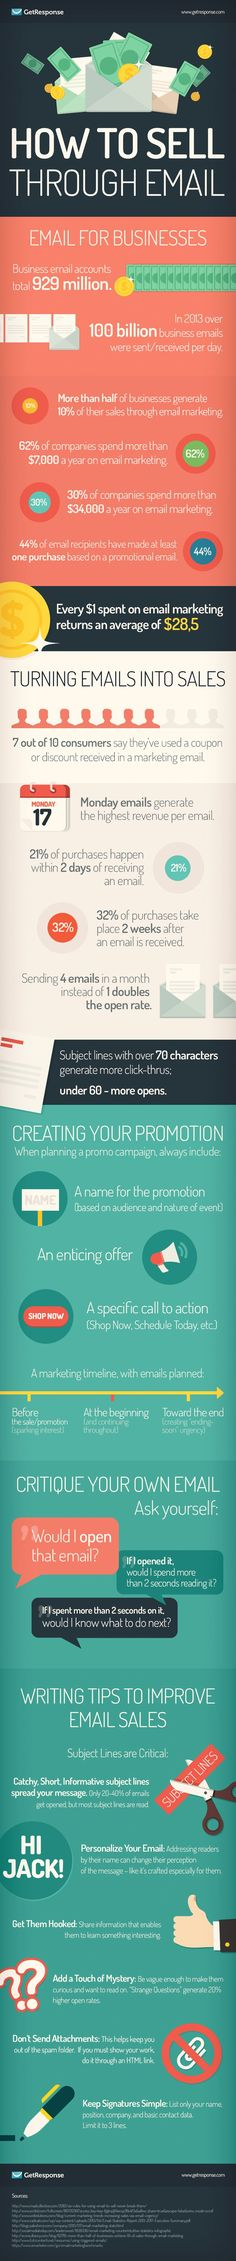 How to Sell Through Email http://www.socialmediamamma.com Email marketing Infographic